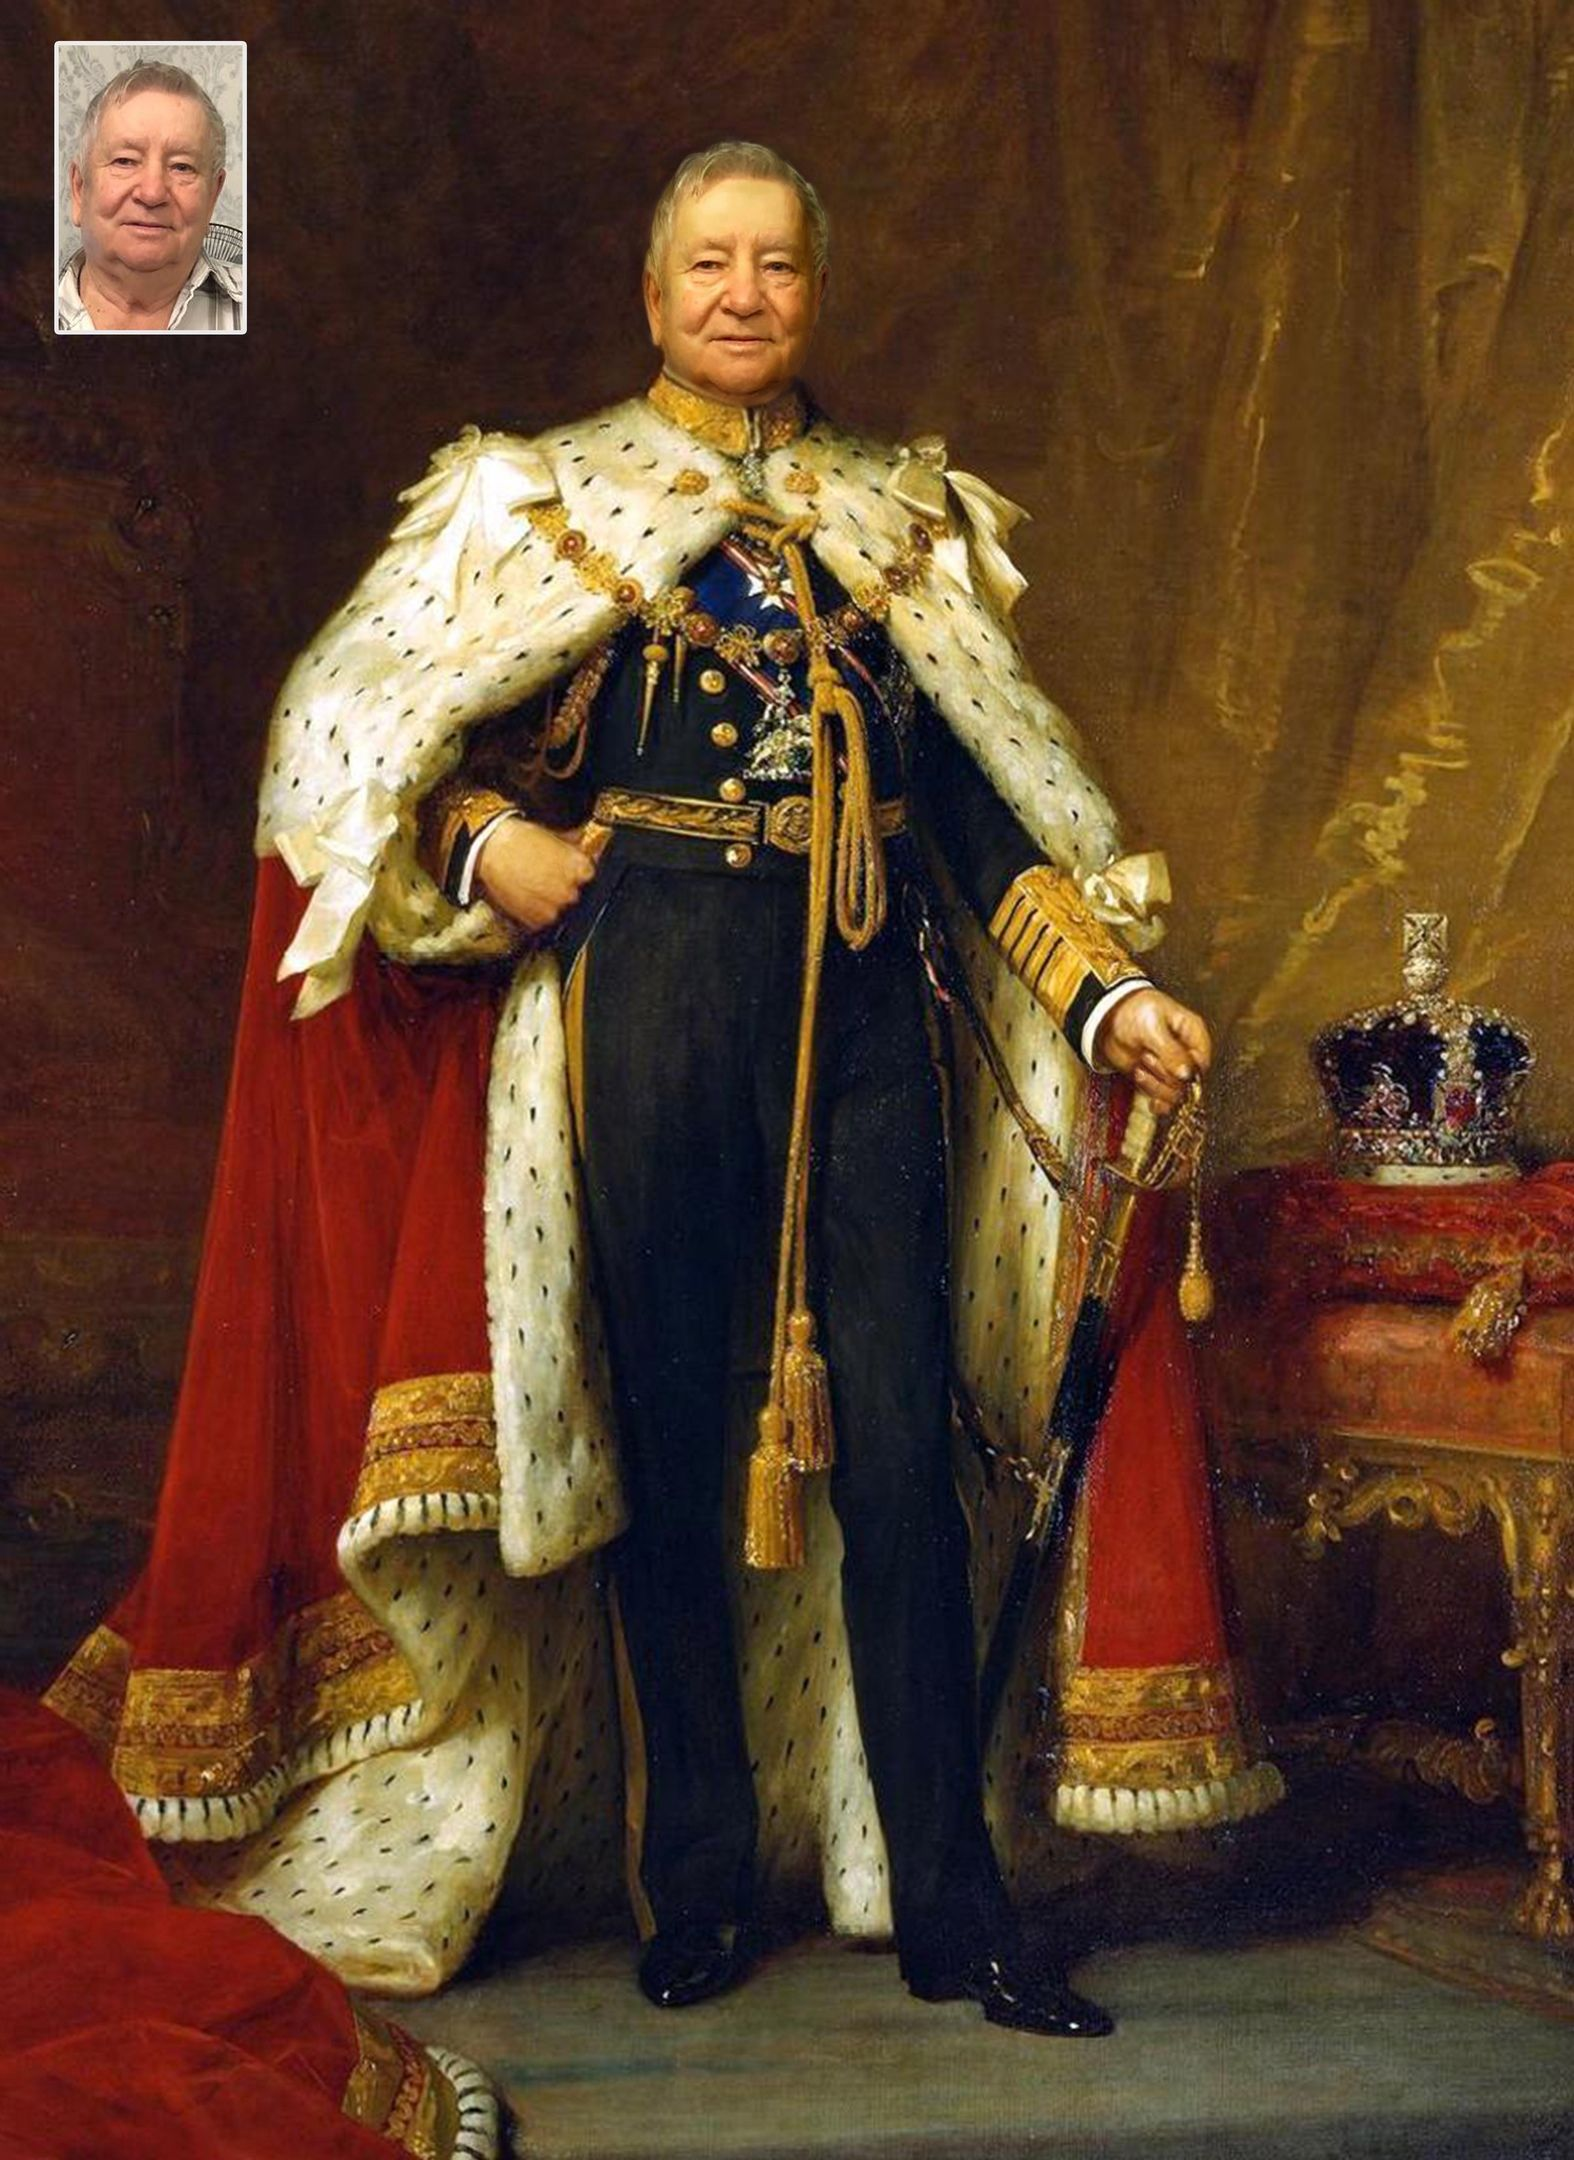 who was king of england in 1776 by Corina Zertuche